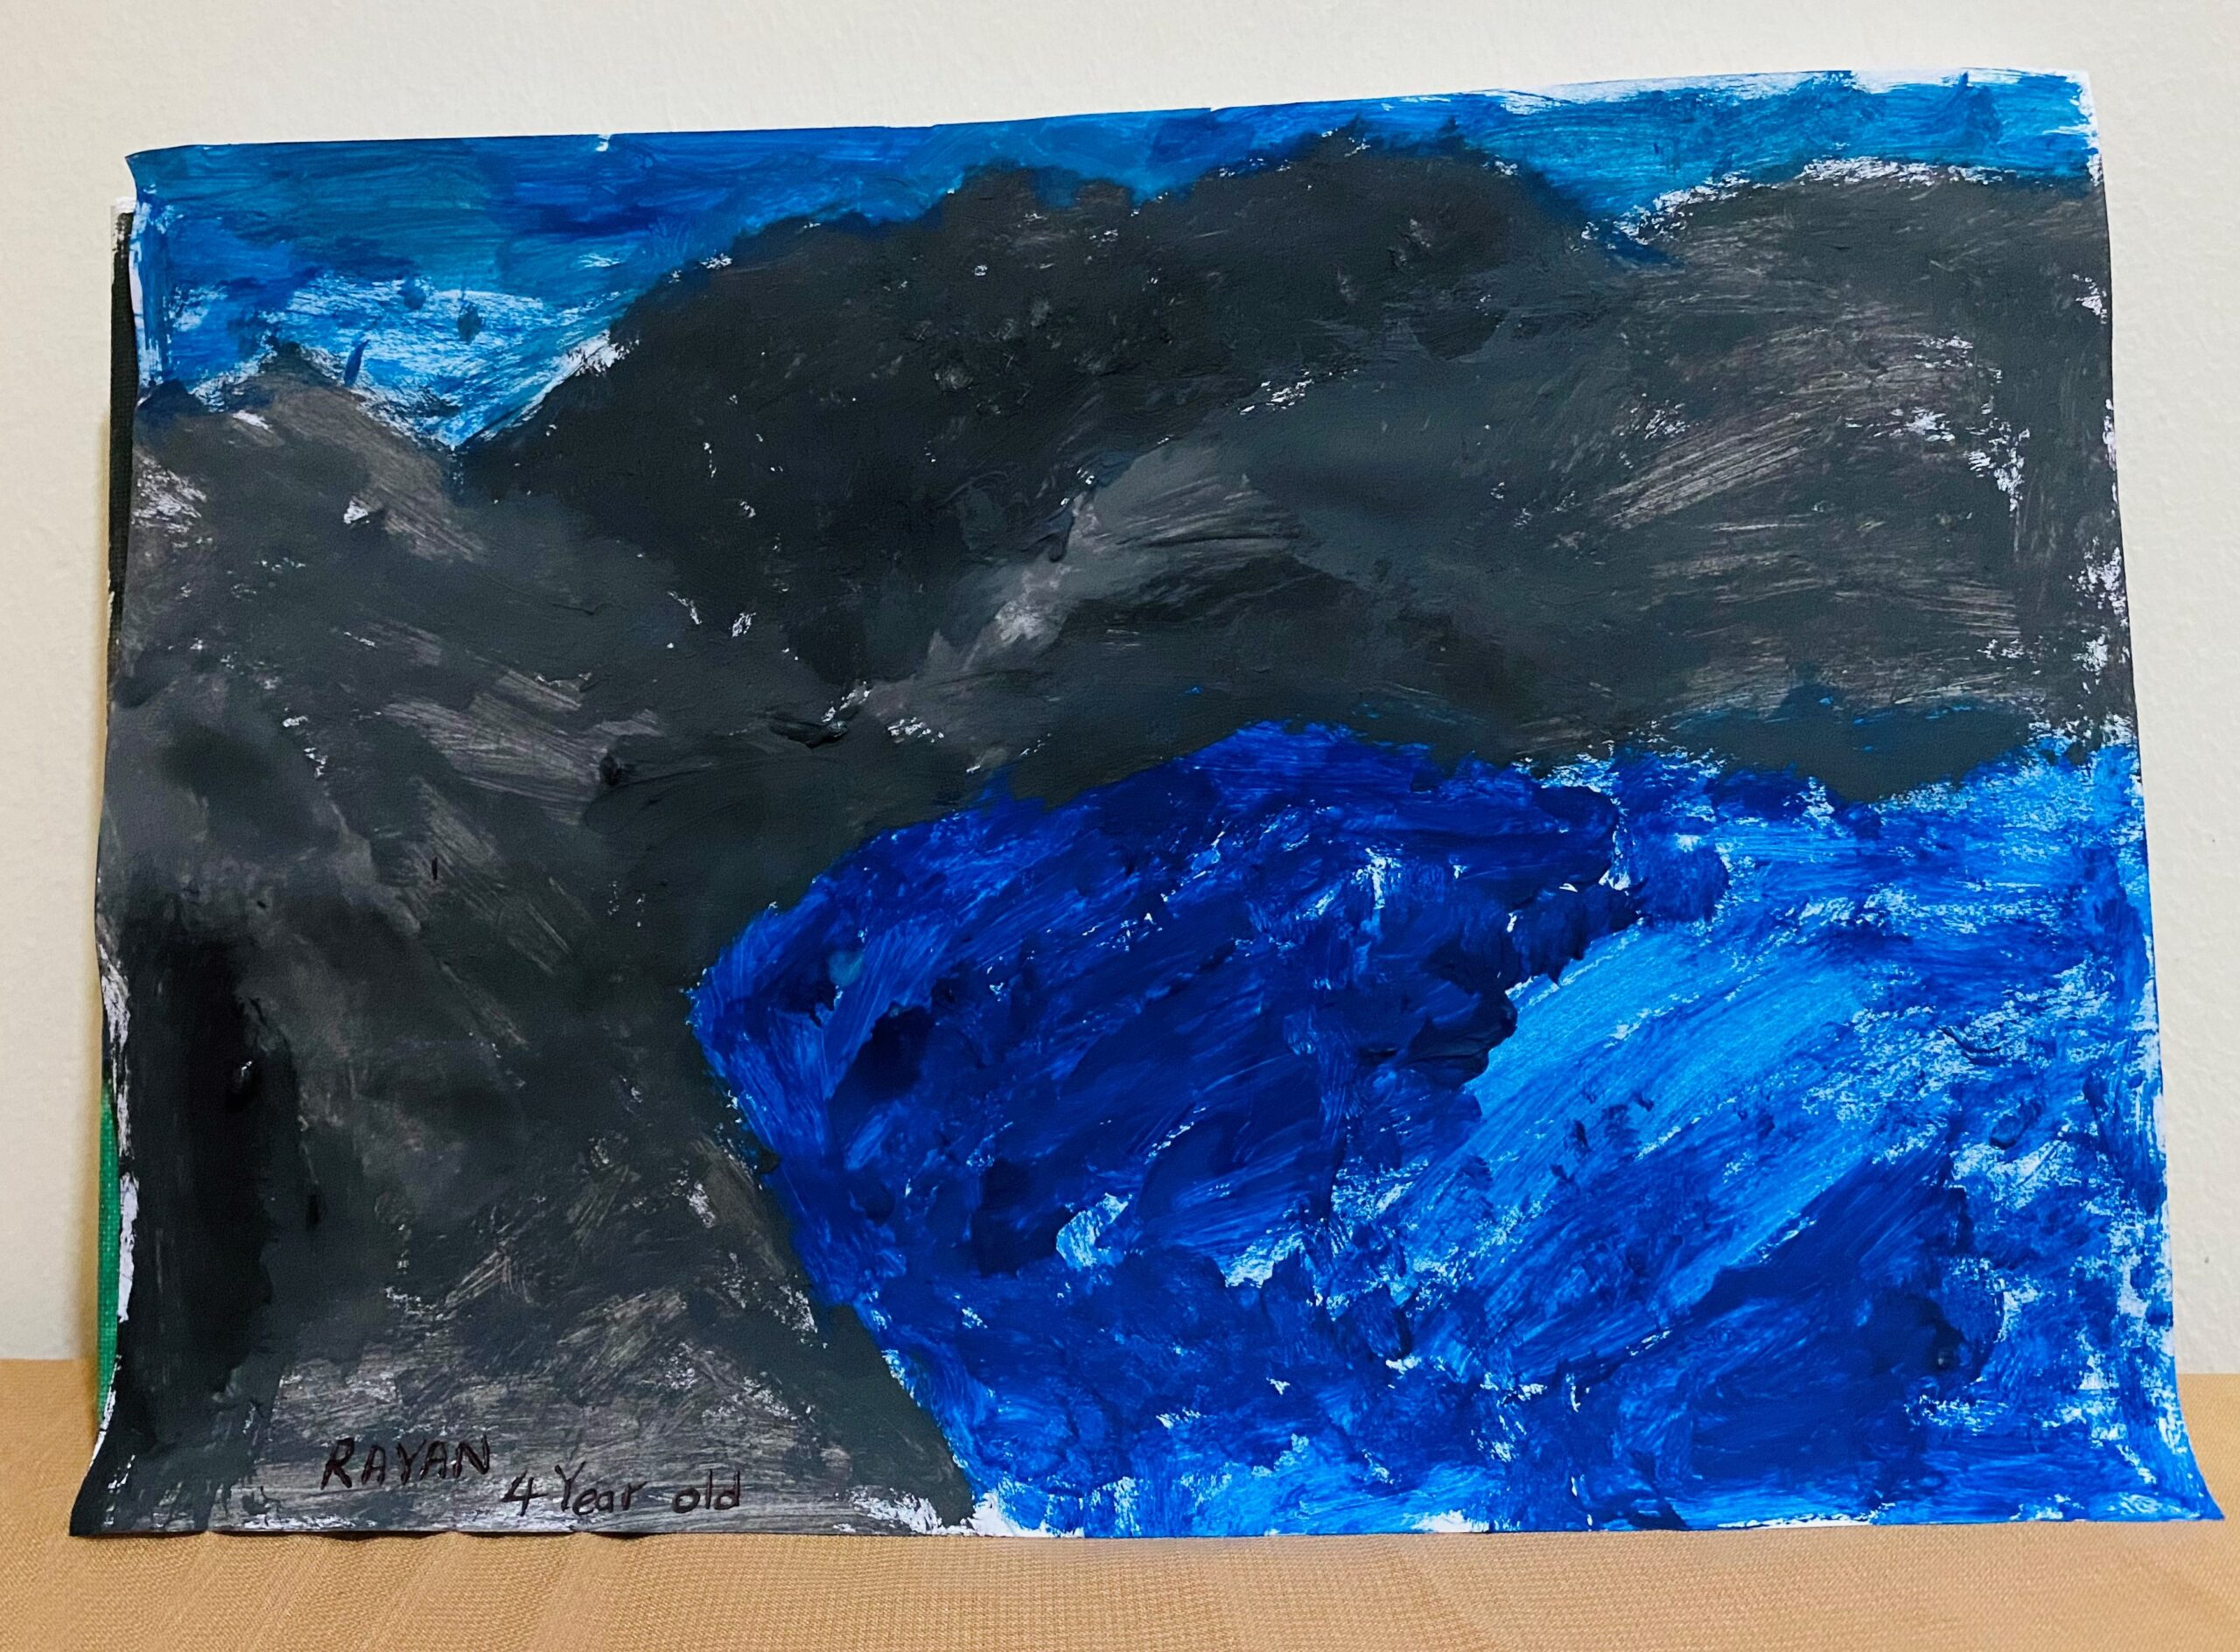 Deep blue see with the rocks by Rayan Ashpak